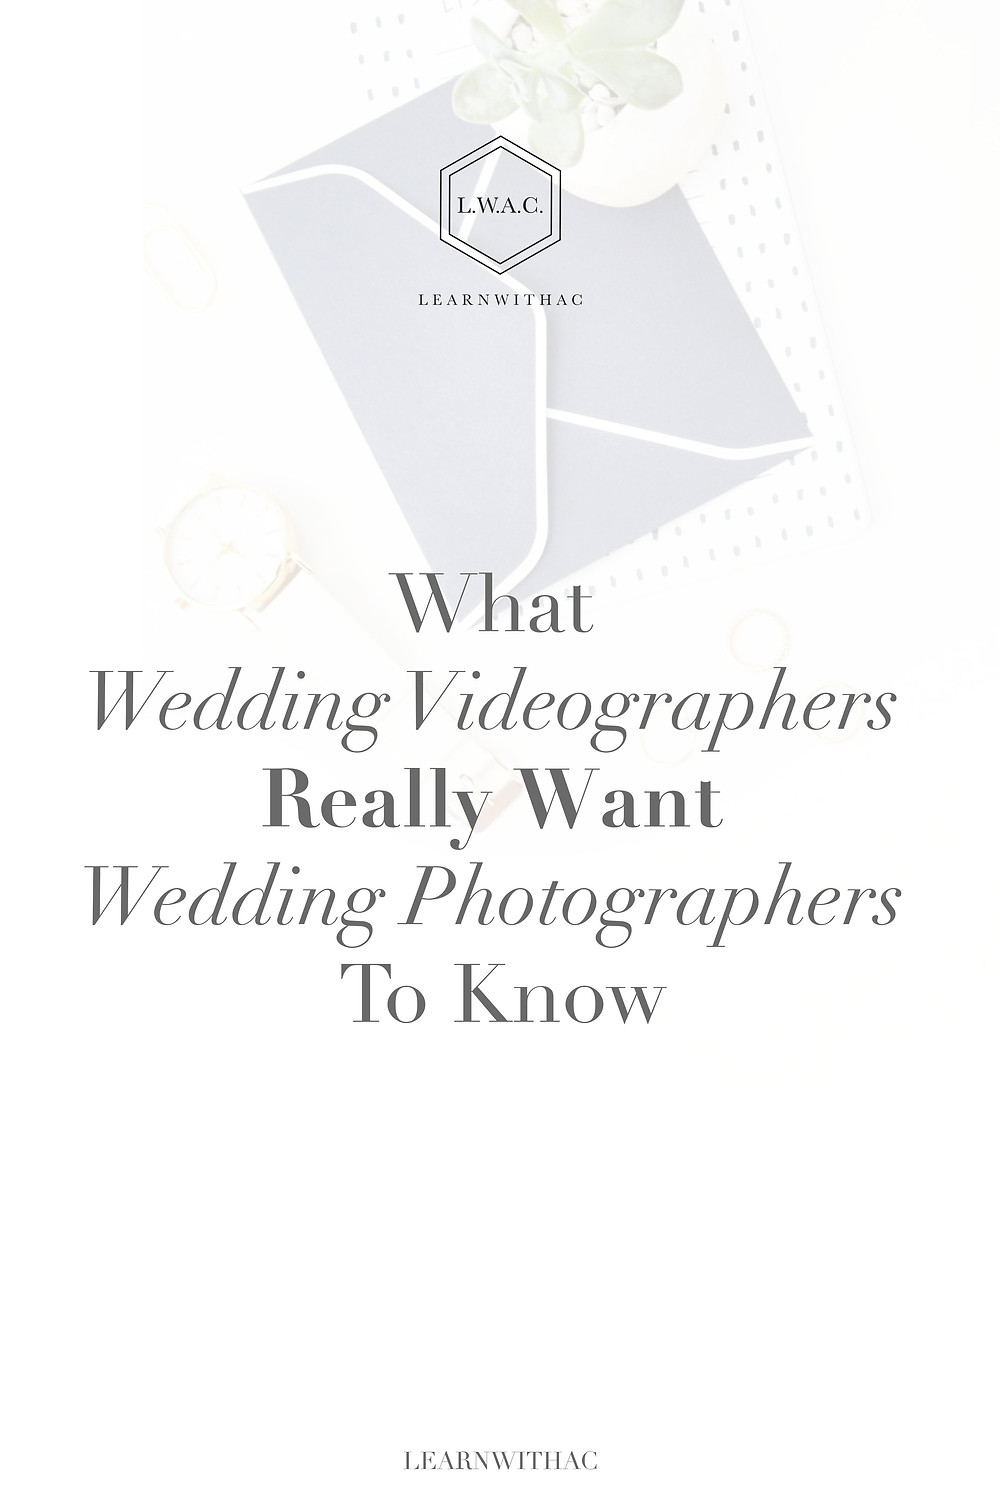 What Wedding Videographers Really Want Wedding Photographers To Know